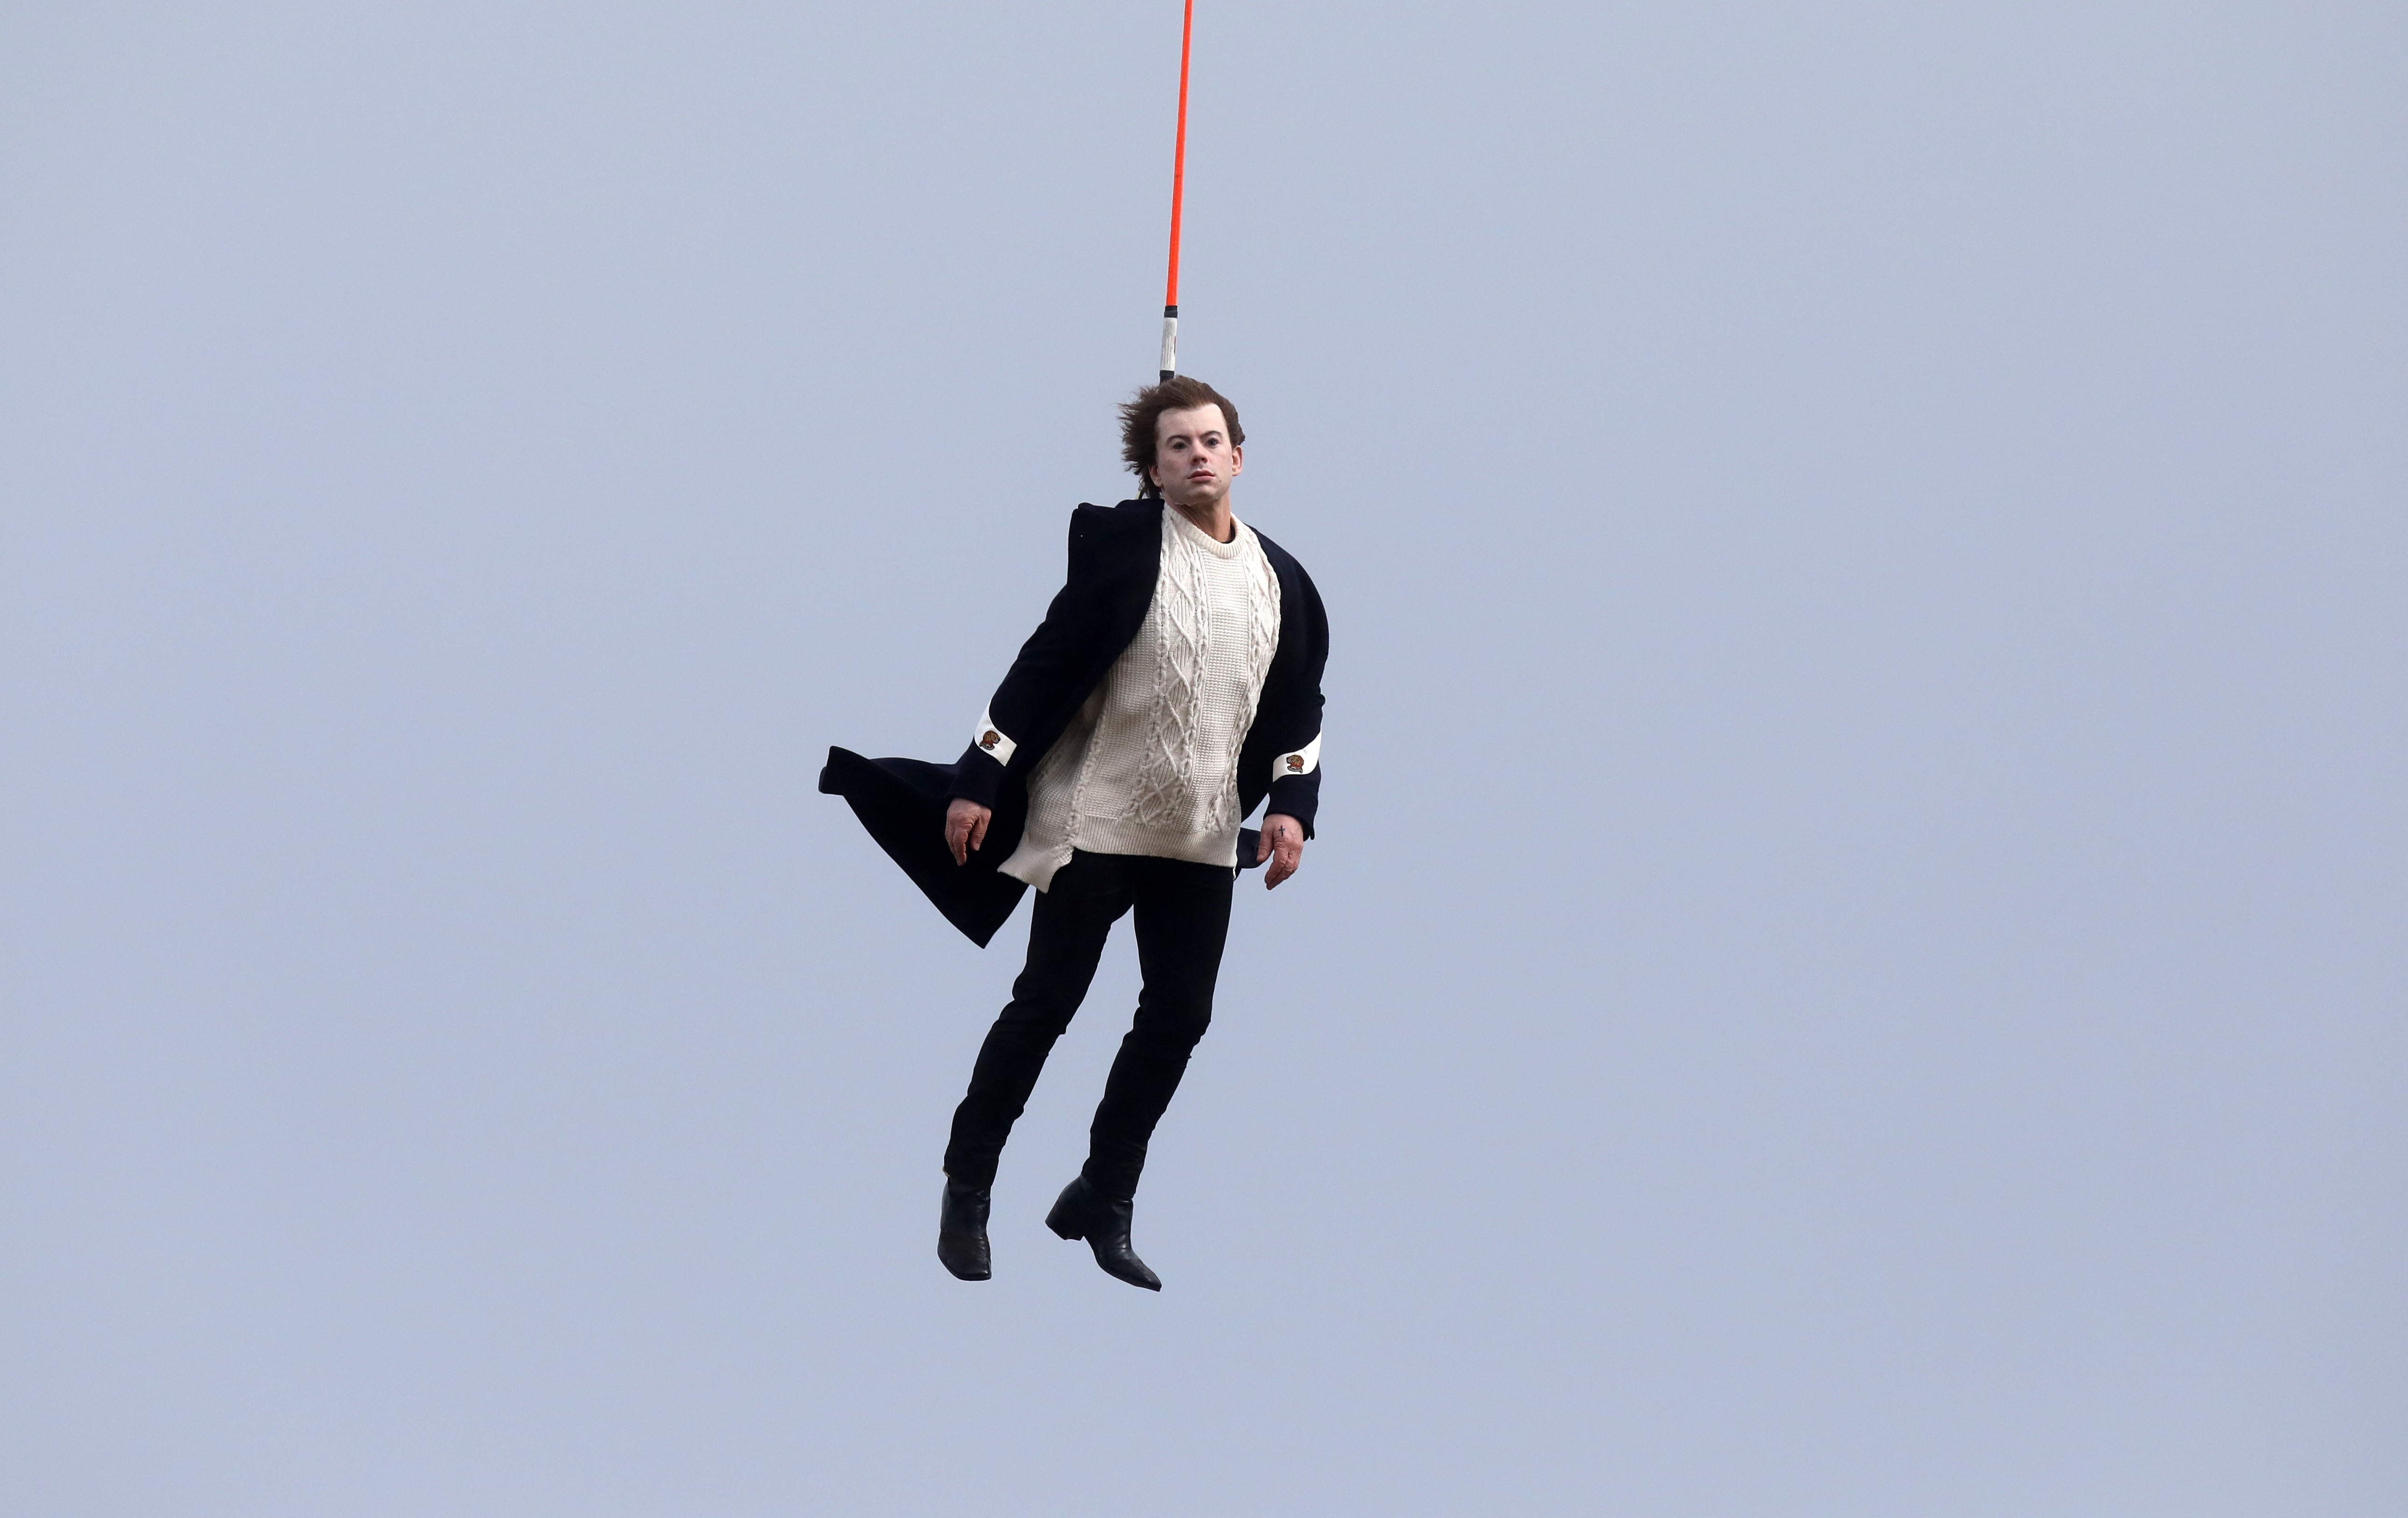 Harry Styles stunt double filming music video